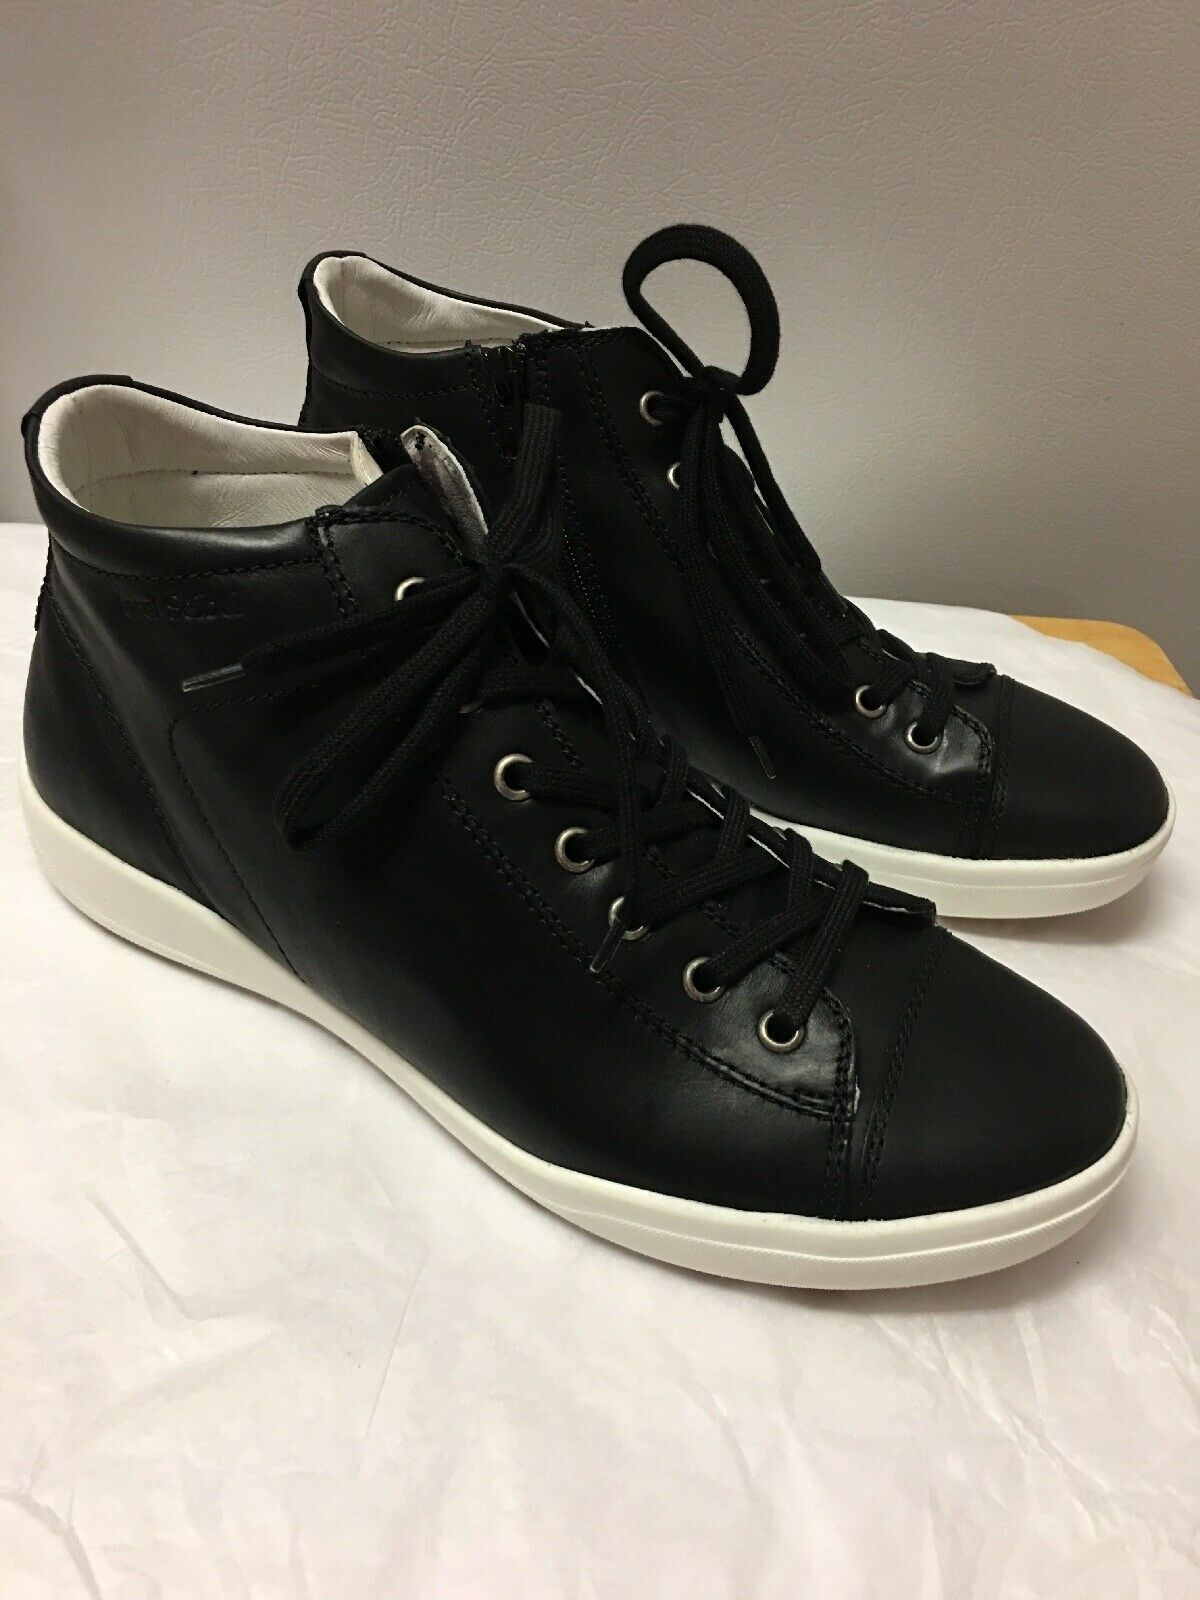 Josef Seibel Campa Calf Black mid-top sneakers Size 40